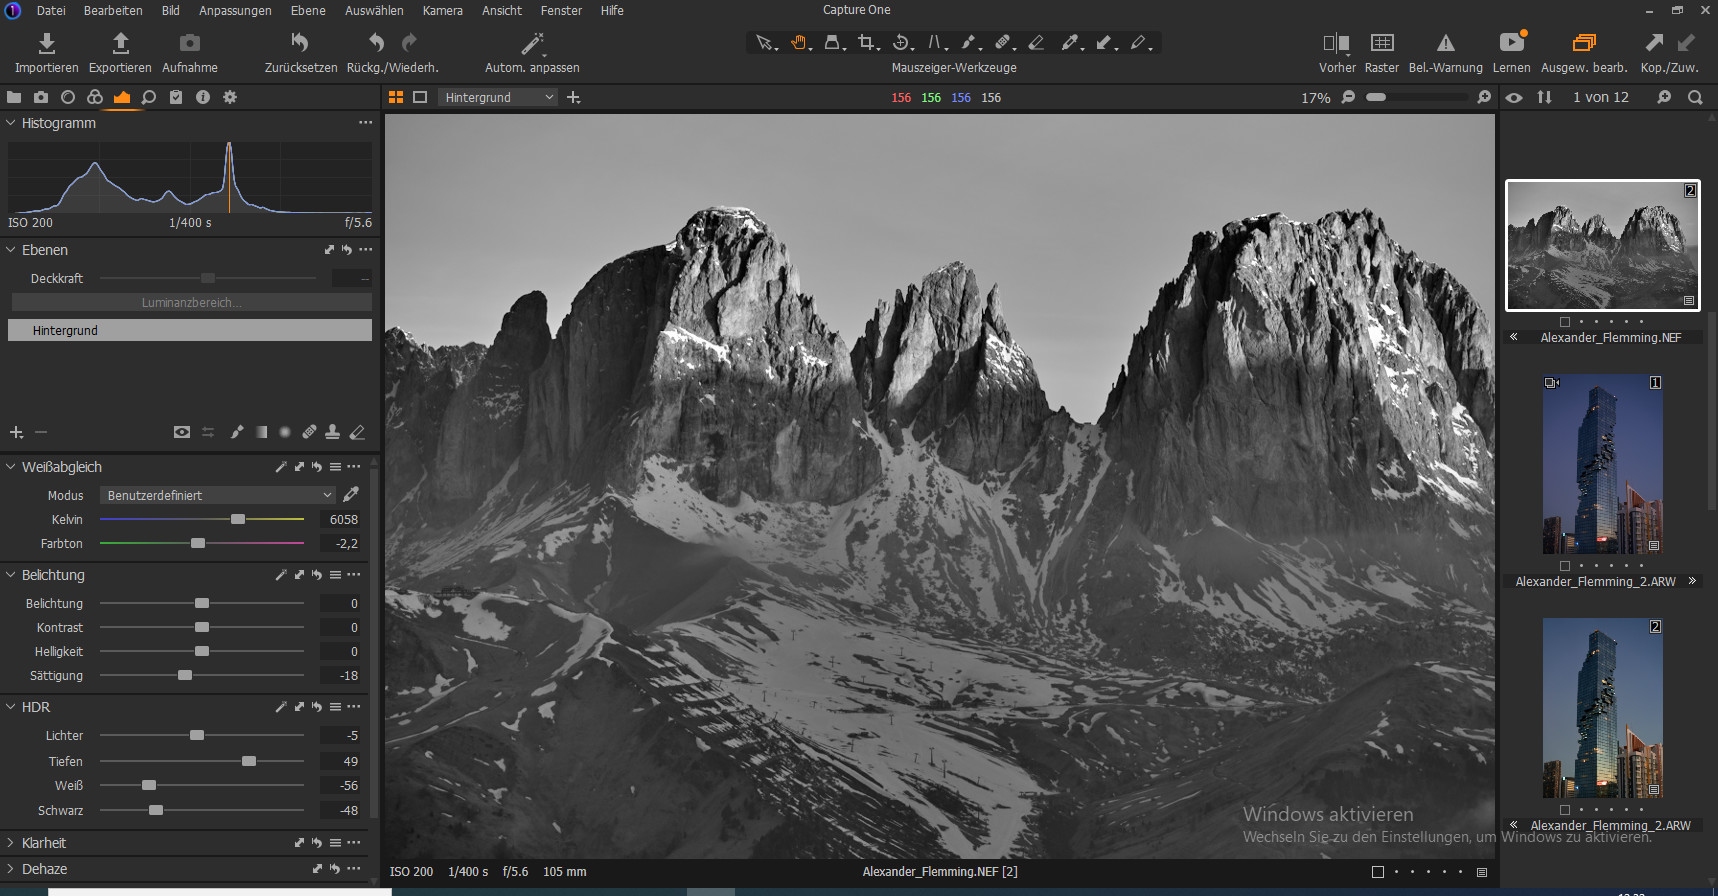 Screenshot 1 - Capture One Pro